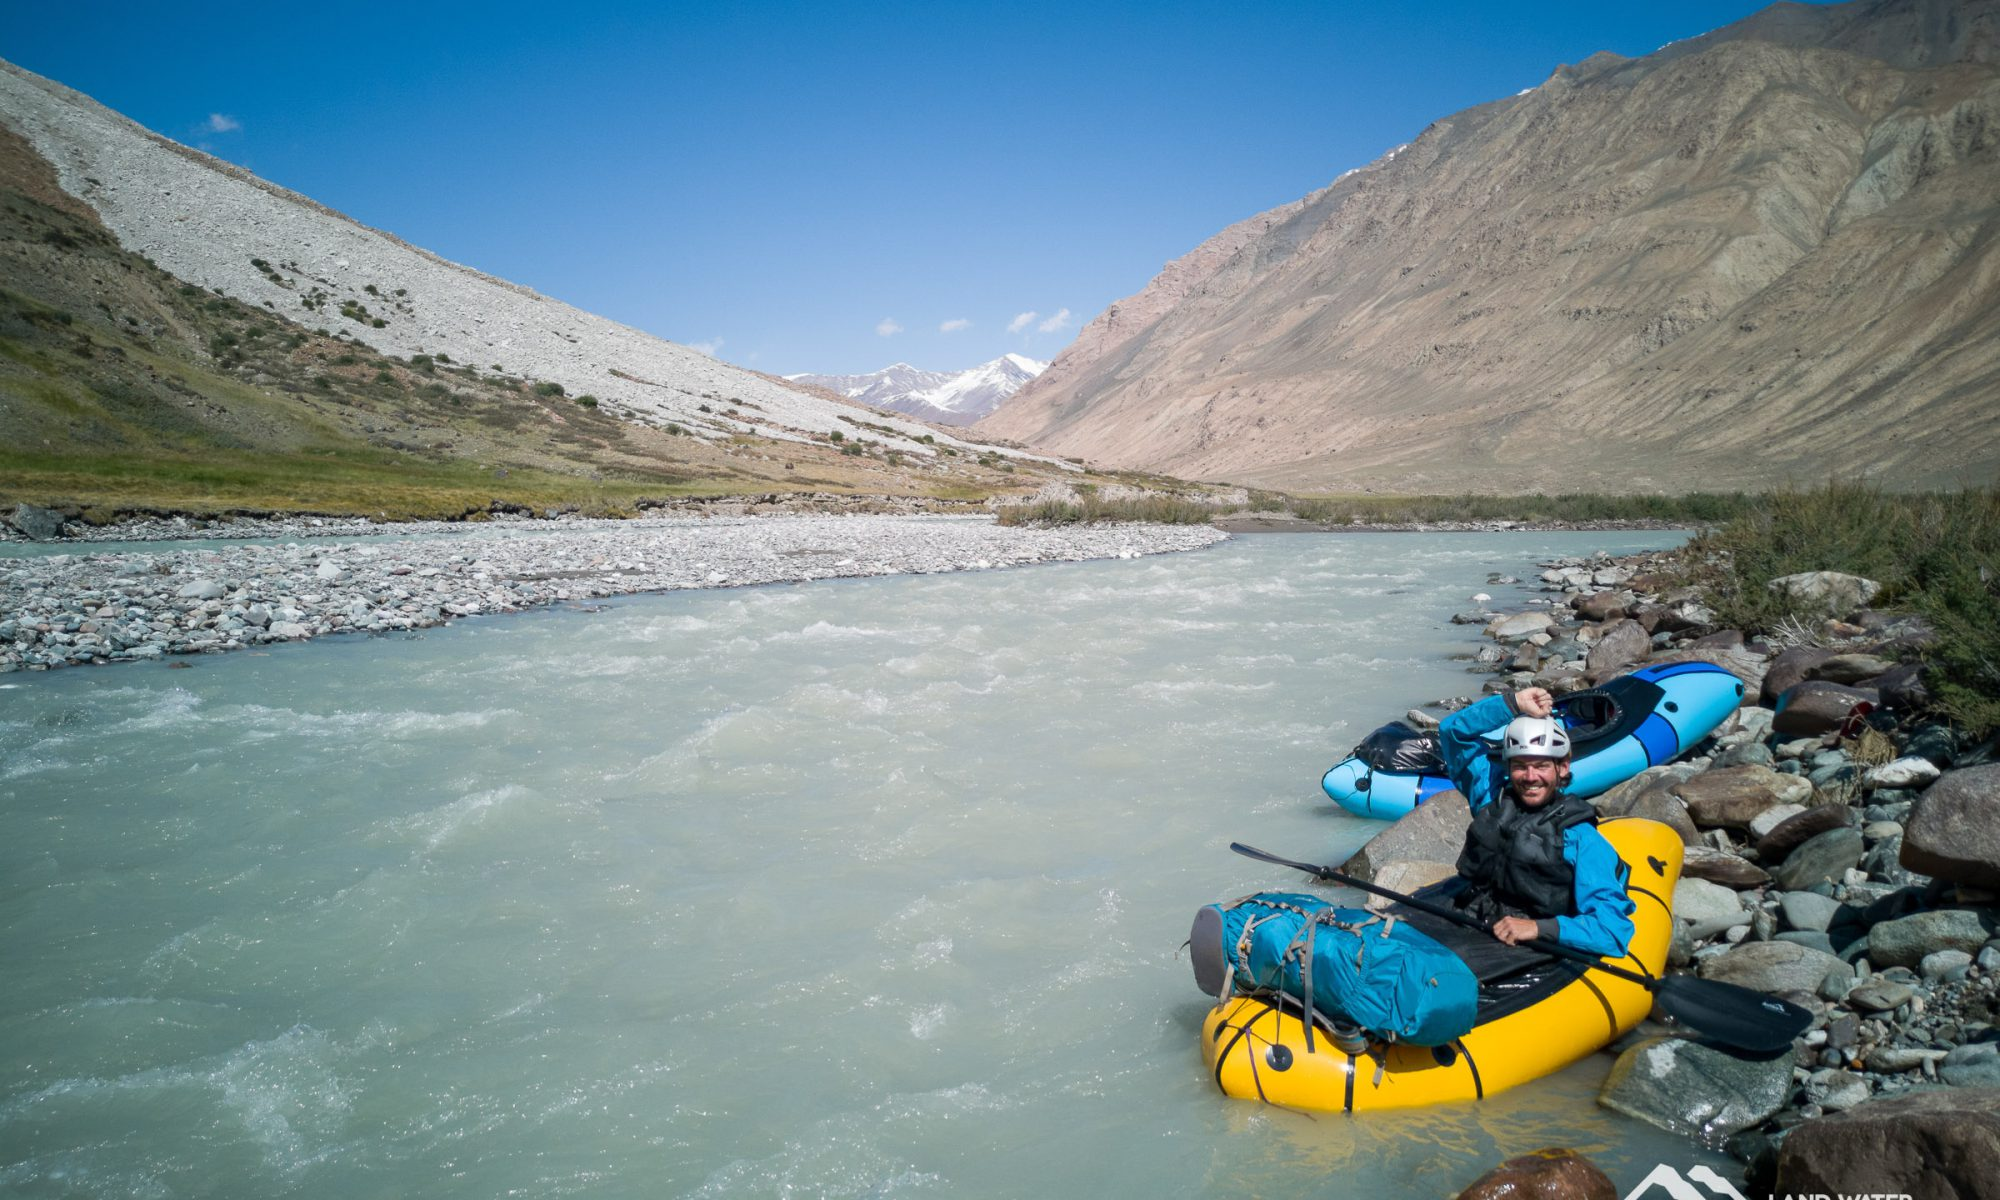 Packrafting beautiful Kirgistan © Alexander Riedel